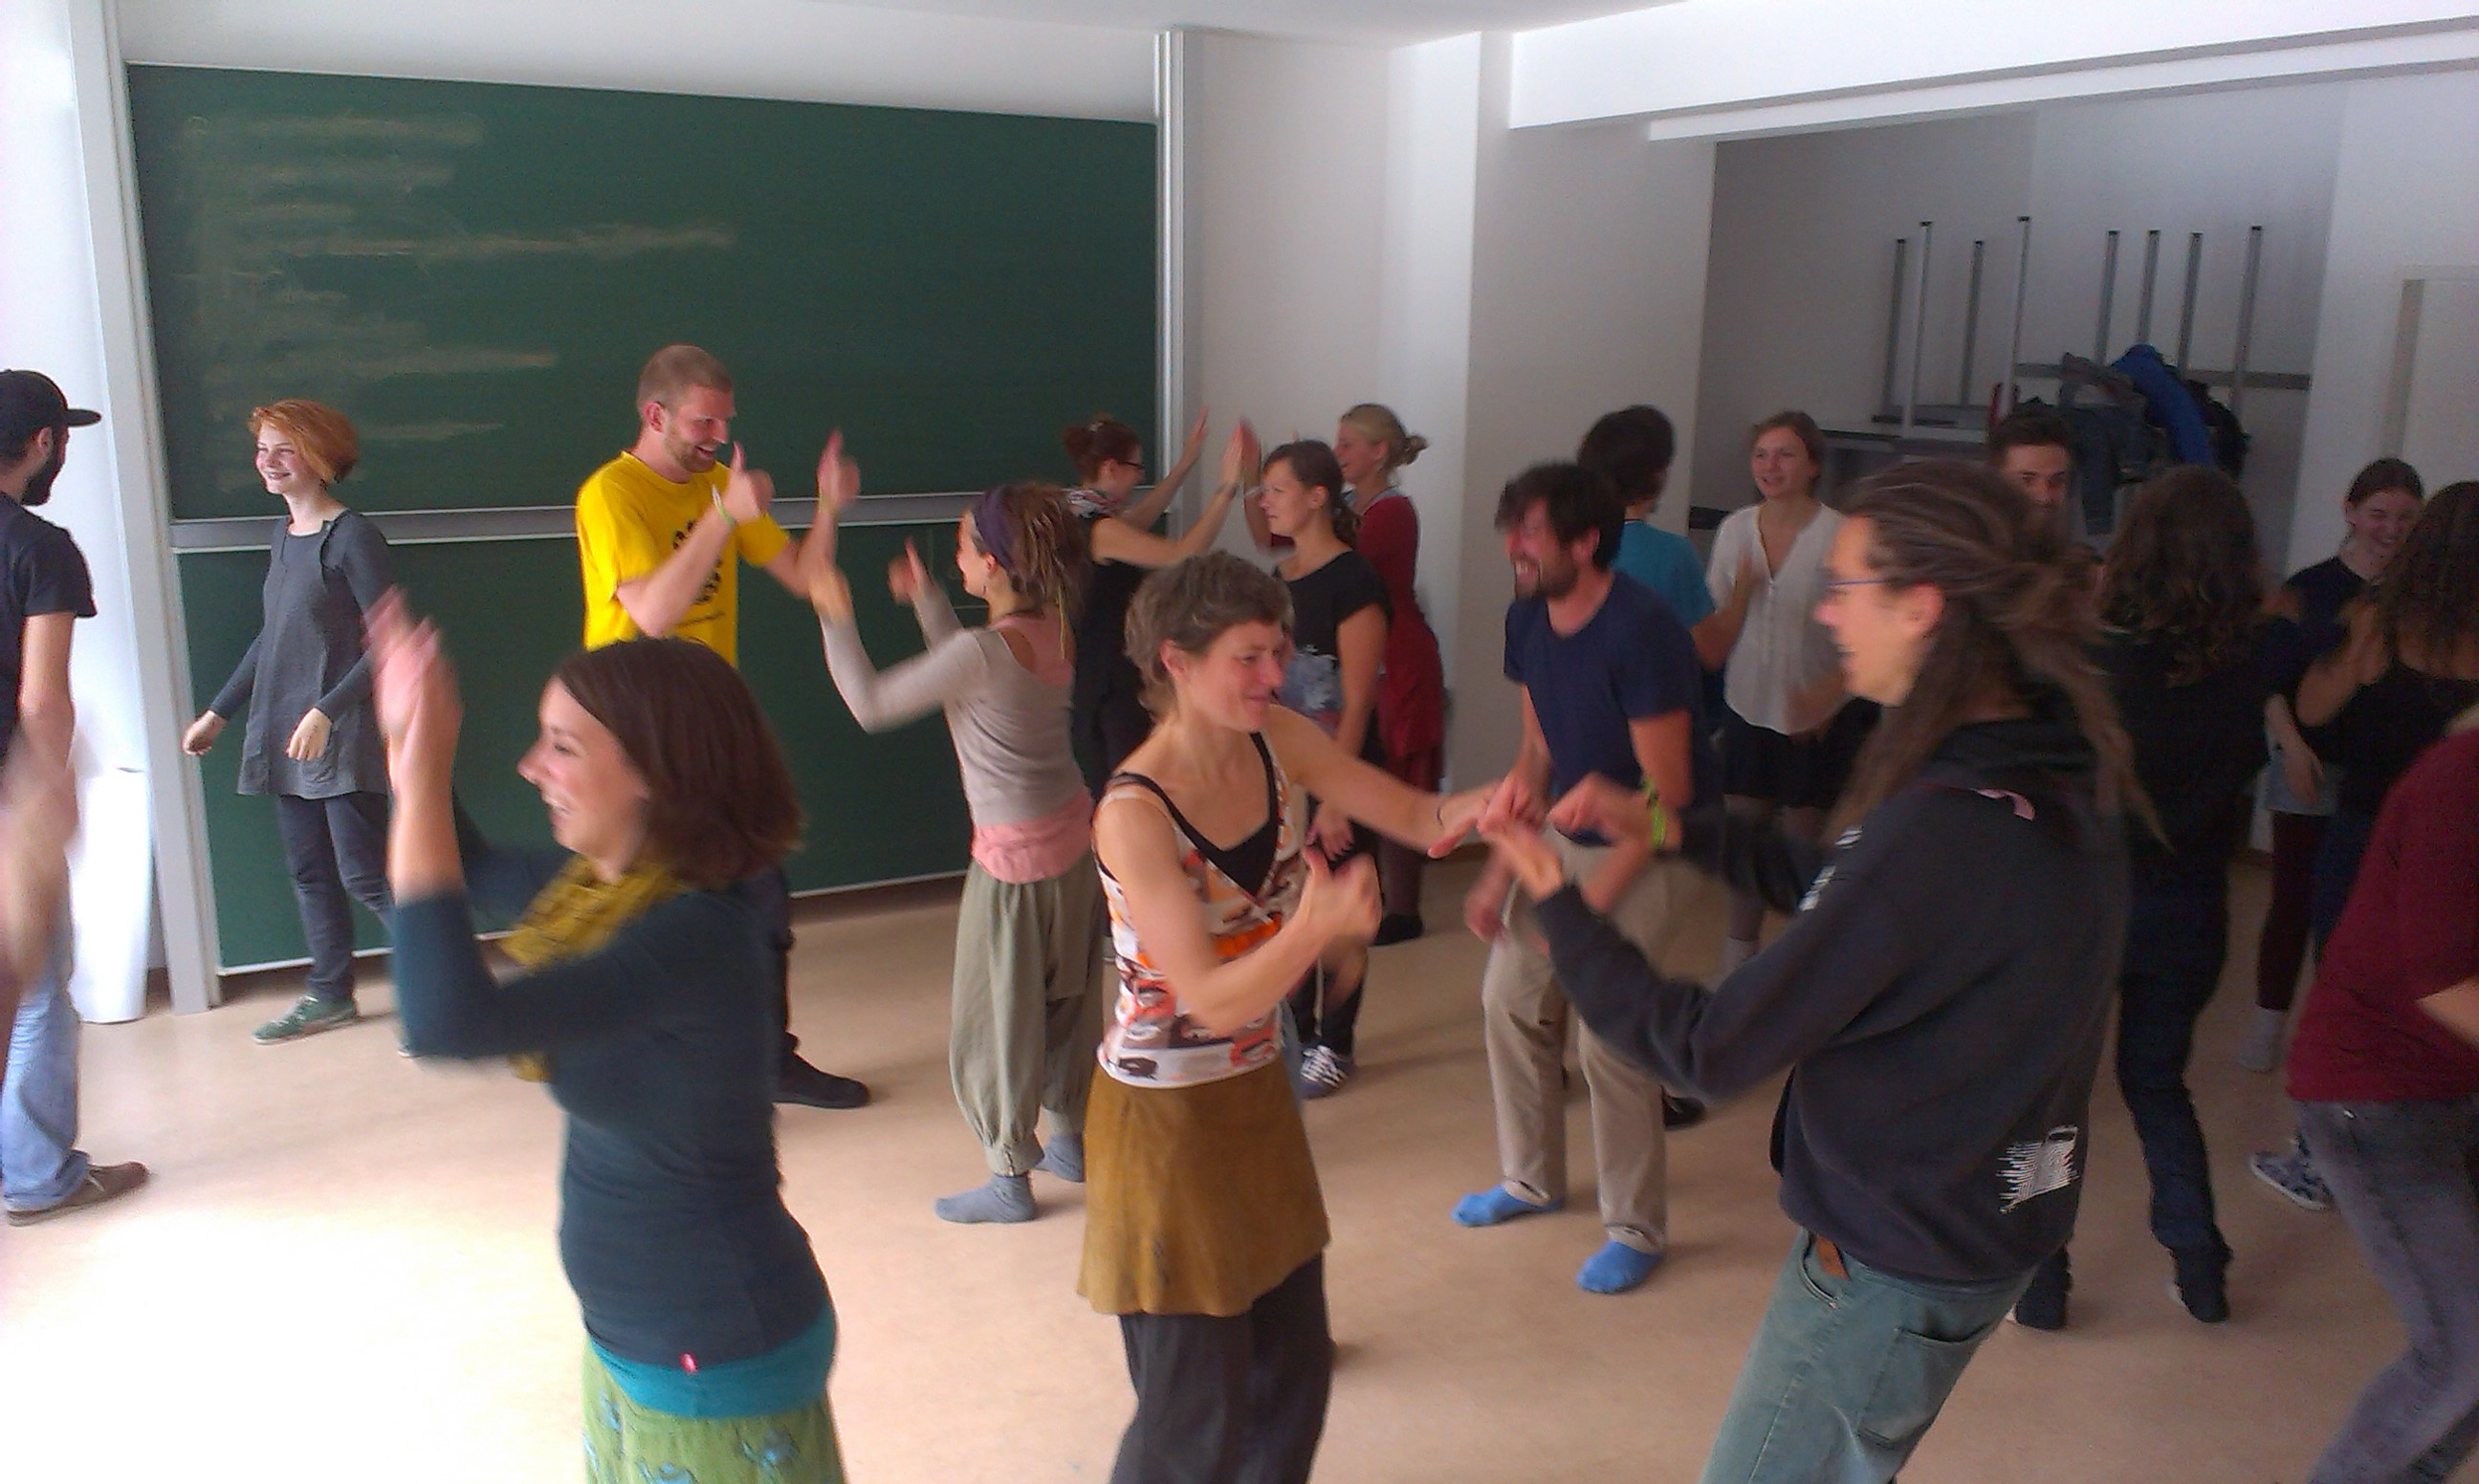 """degrowth theaterworkshop: """"how to resist the cultural voices of growth and acceleration within us?"""""""